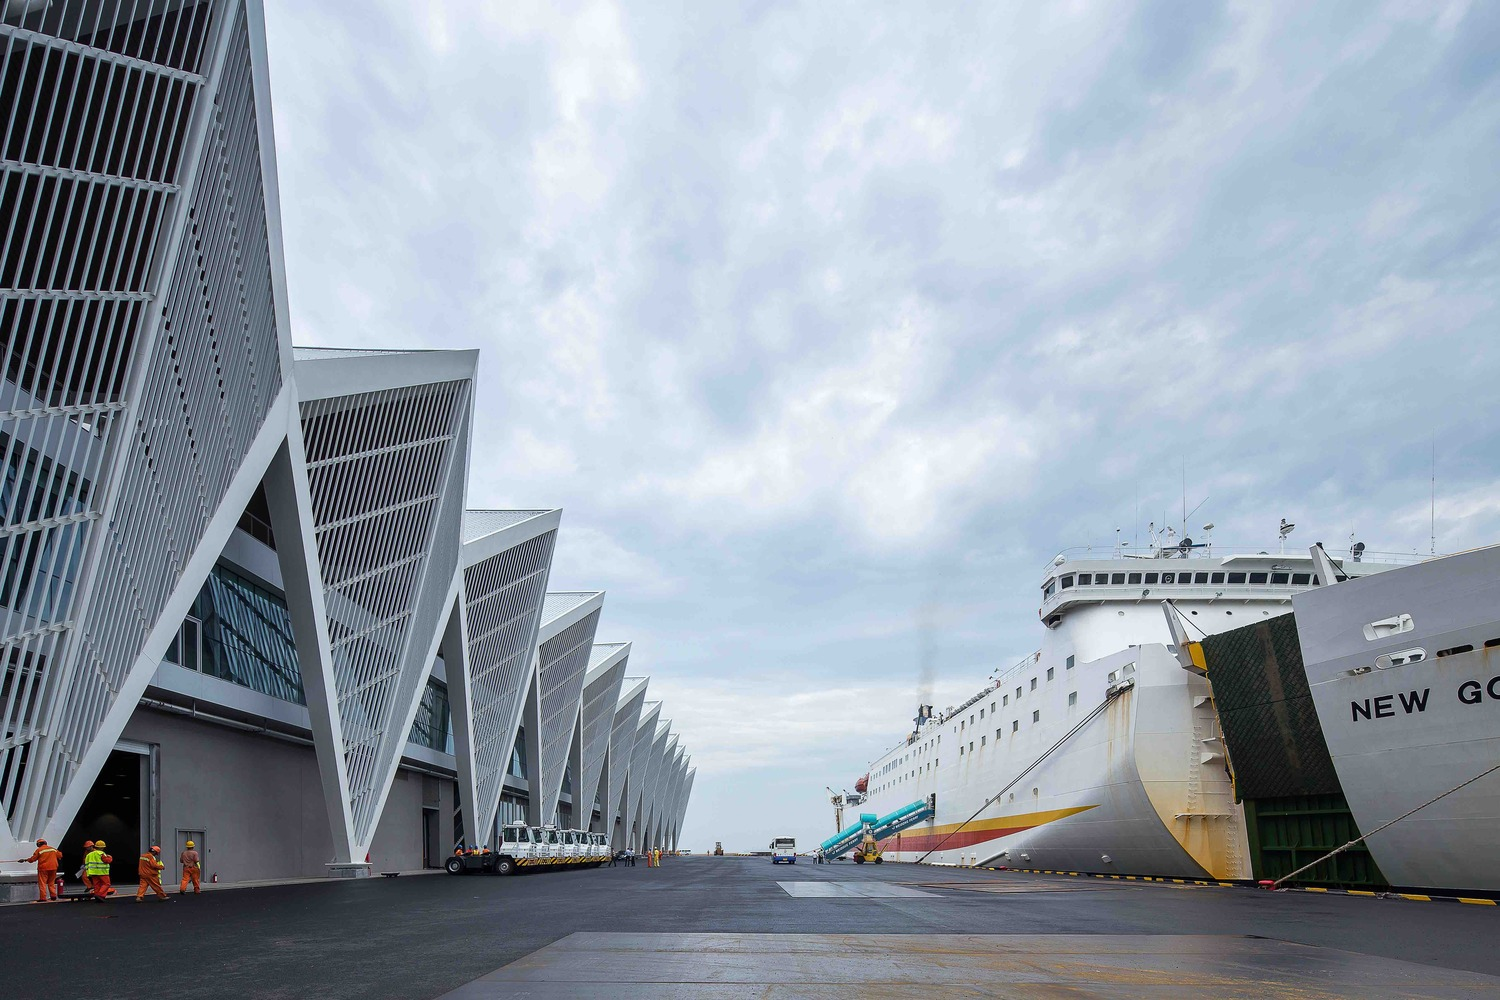 Qingdao Cruise Terminal By Ccdi Mozhao Studio Jing Math Wallpaper Golden Find Free HD for Desktop [pastnedes.tk]